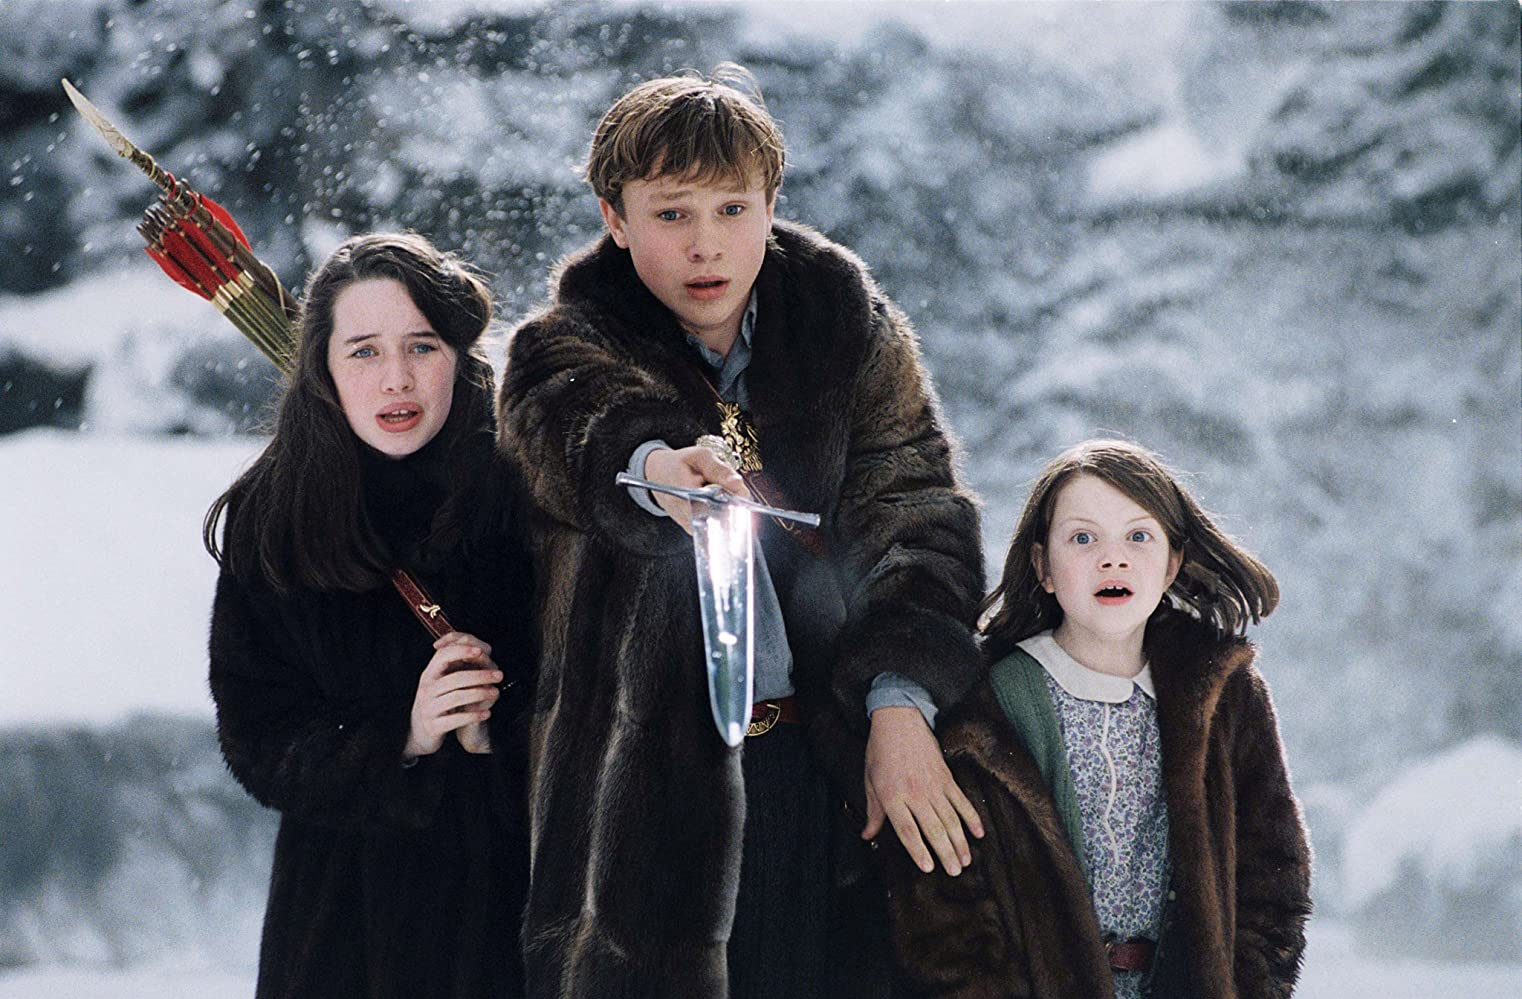 William Moseley, Anna Popplewell, and Georgie Henley in The Chronicles of Narnia: The Lion, the Witch and the Wardrobe (2005)